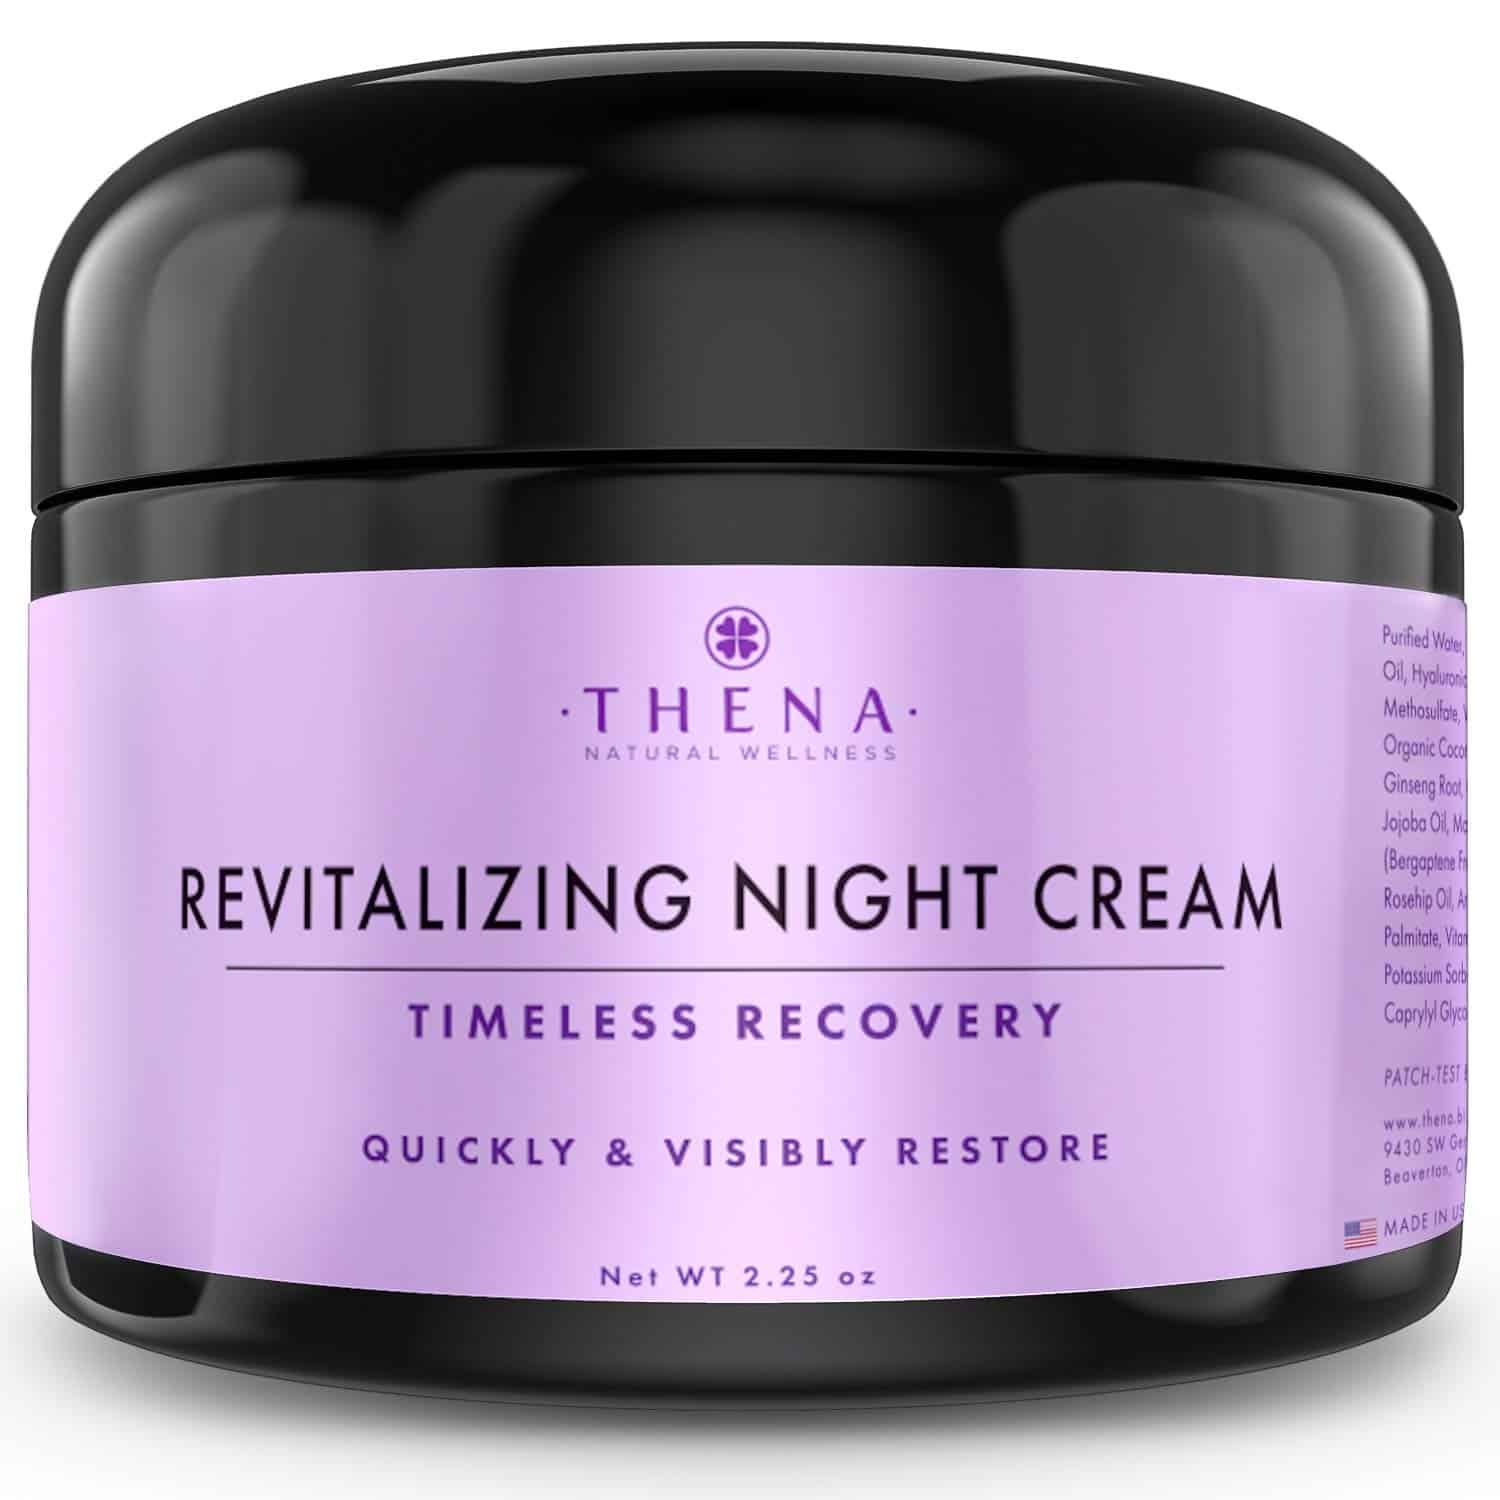 Night Cream Anti-Aging Wrinkle Cream with Vitamin A (Retinol) E & C Hyaluronic Acid